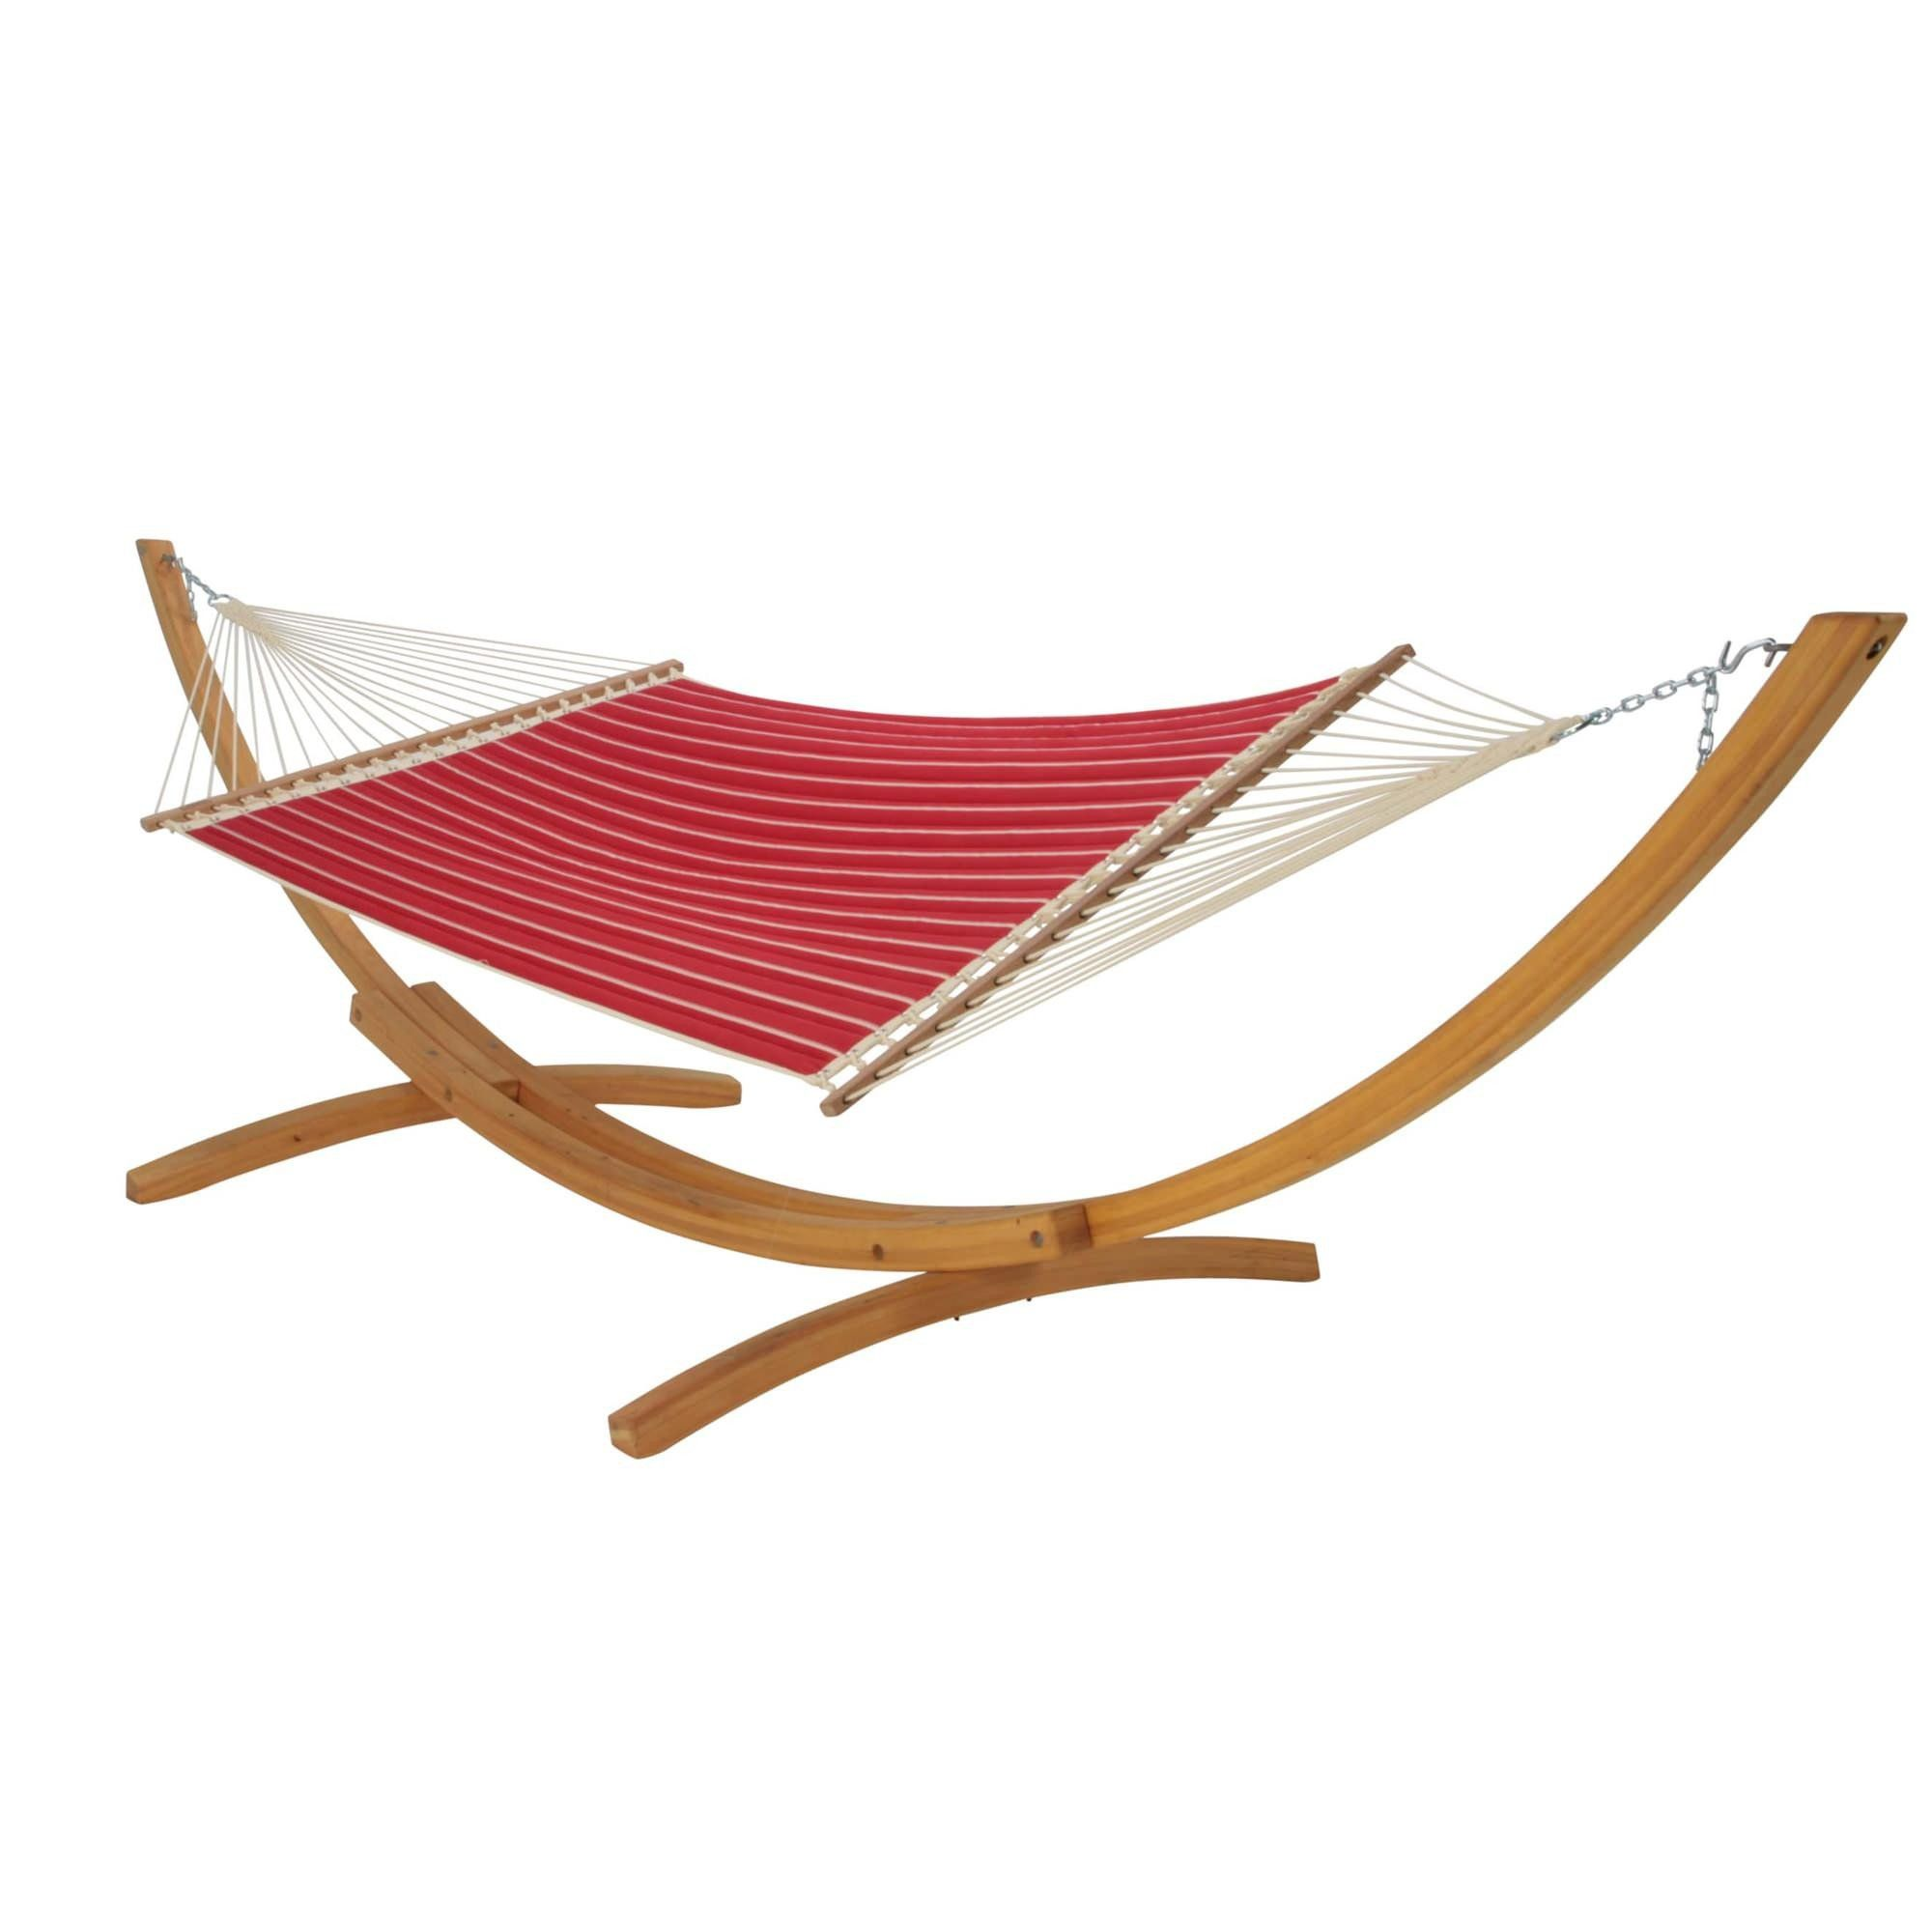 Hatteras hammocks large quilted hammock classic red stripe